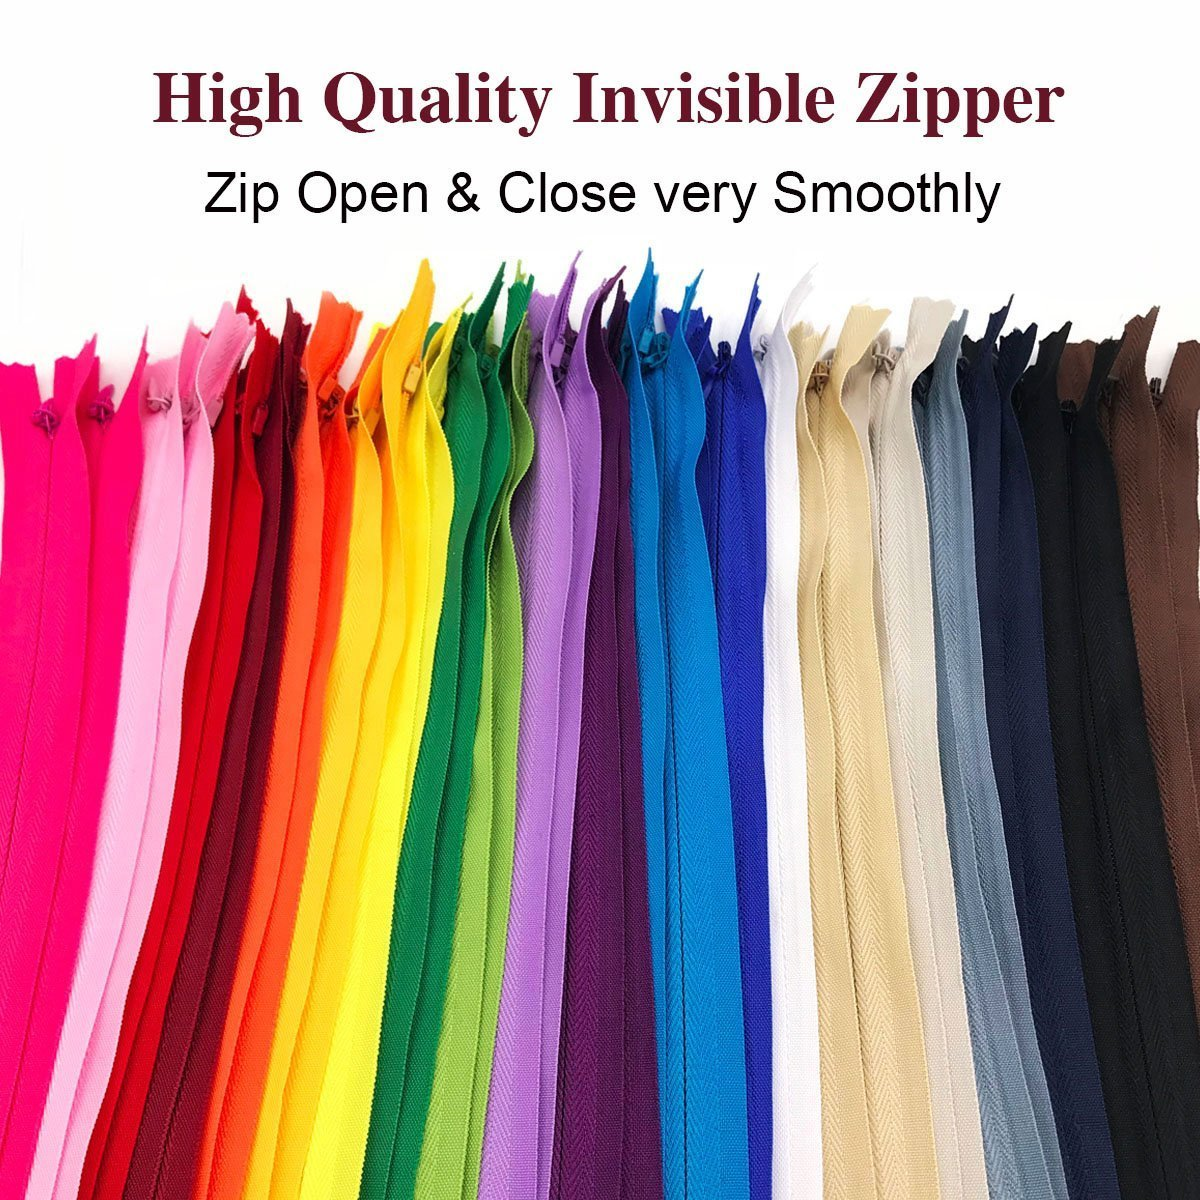 22 inch,White 20PCS Nylon Invisible Zipper,Sewing for Handmade Garment//Bags//Home Textile,Tailor Sewer Crafters Special